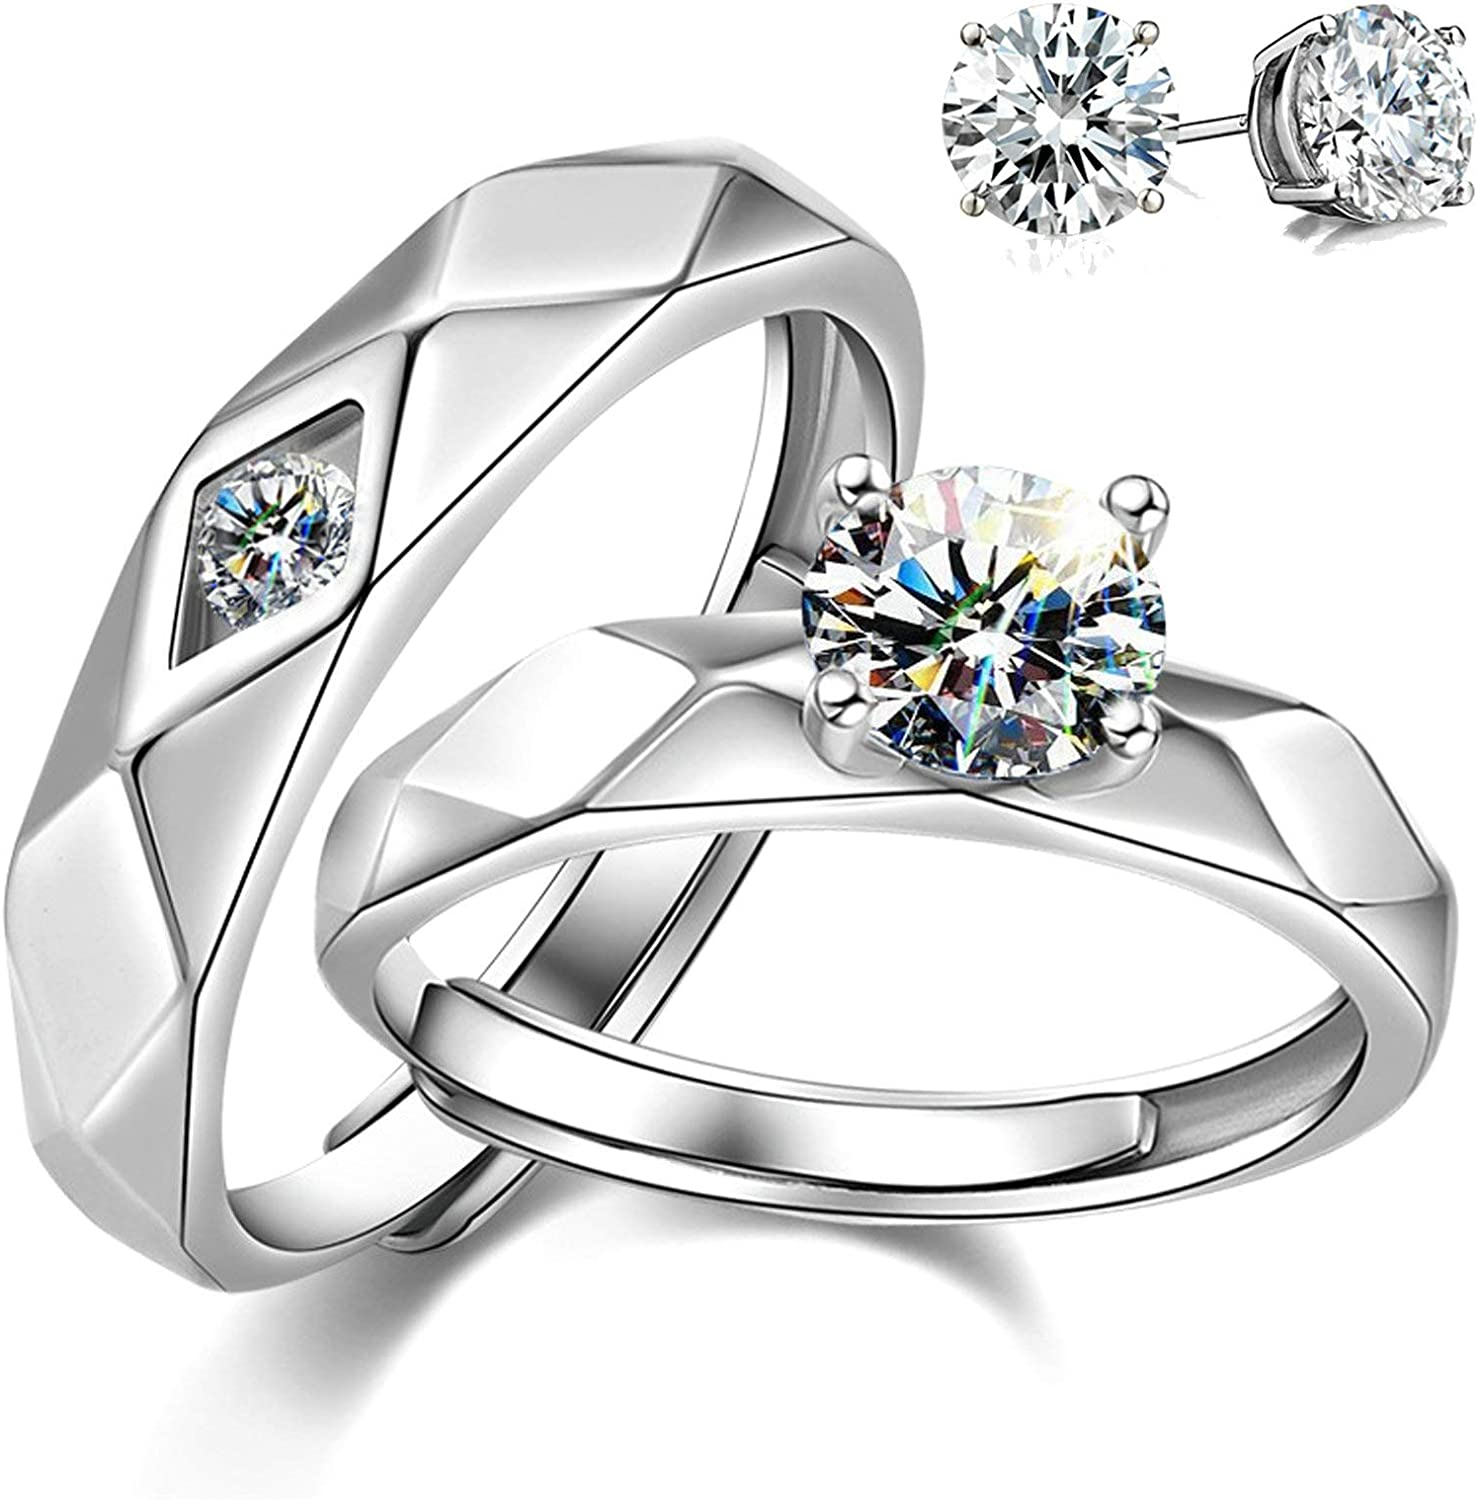 Aeici 925 Sterling Silver Couple Cubic Ri Zirconia Wedding 5% OFF Limited price sale Rings